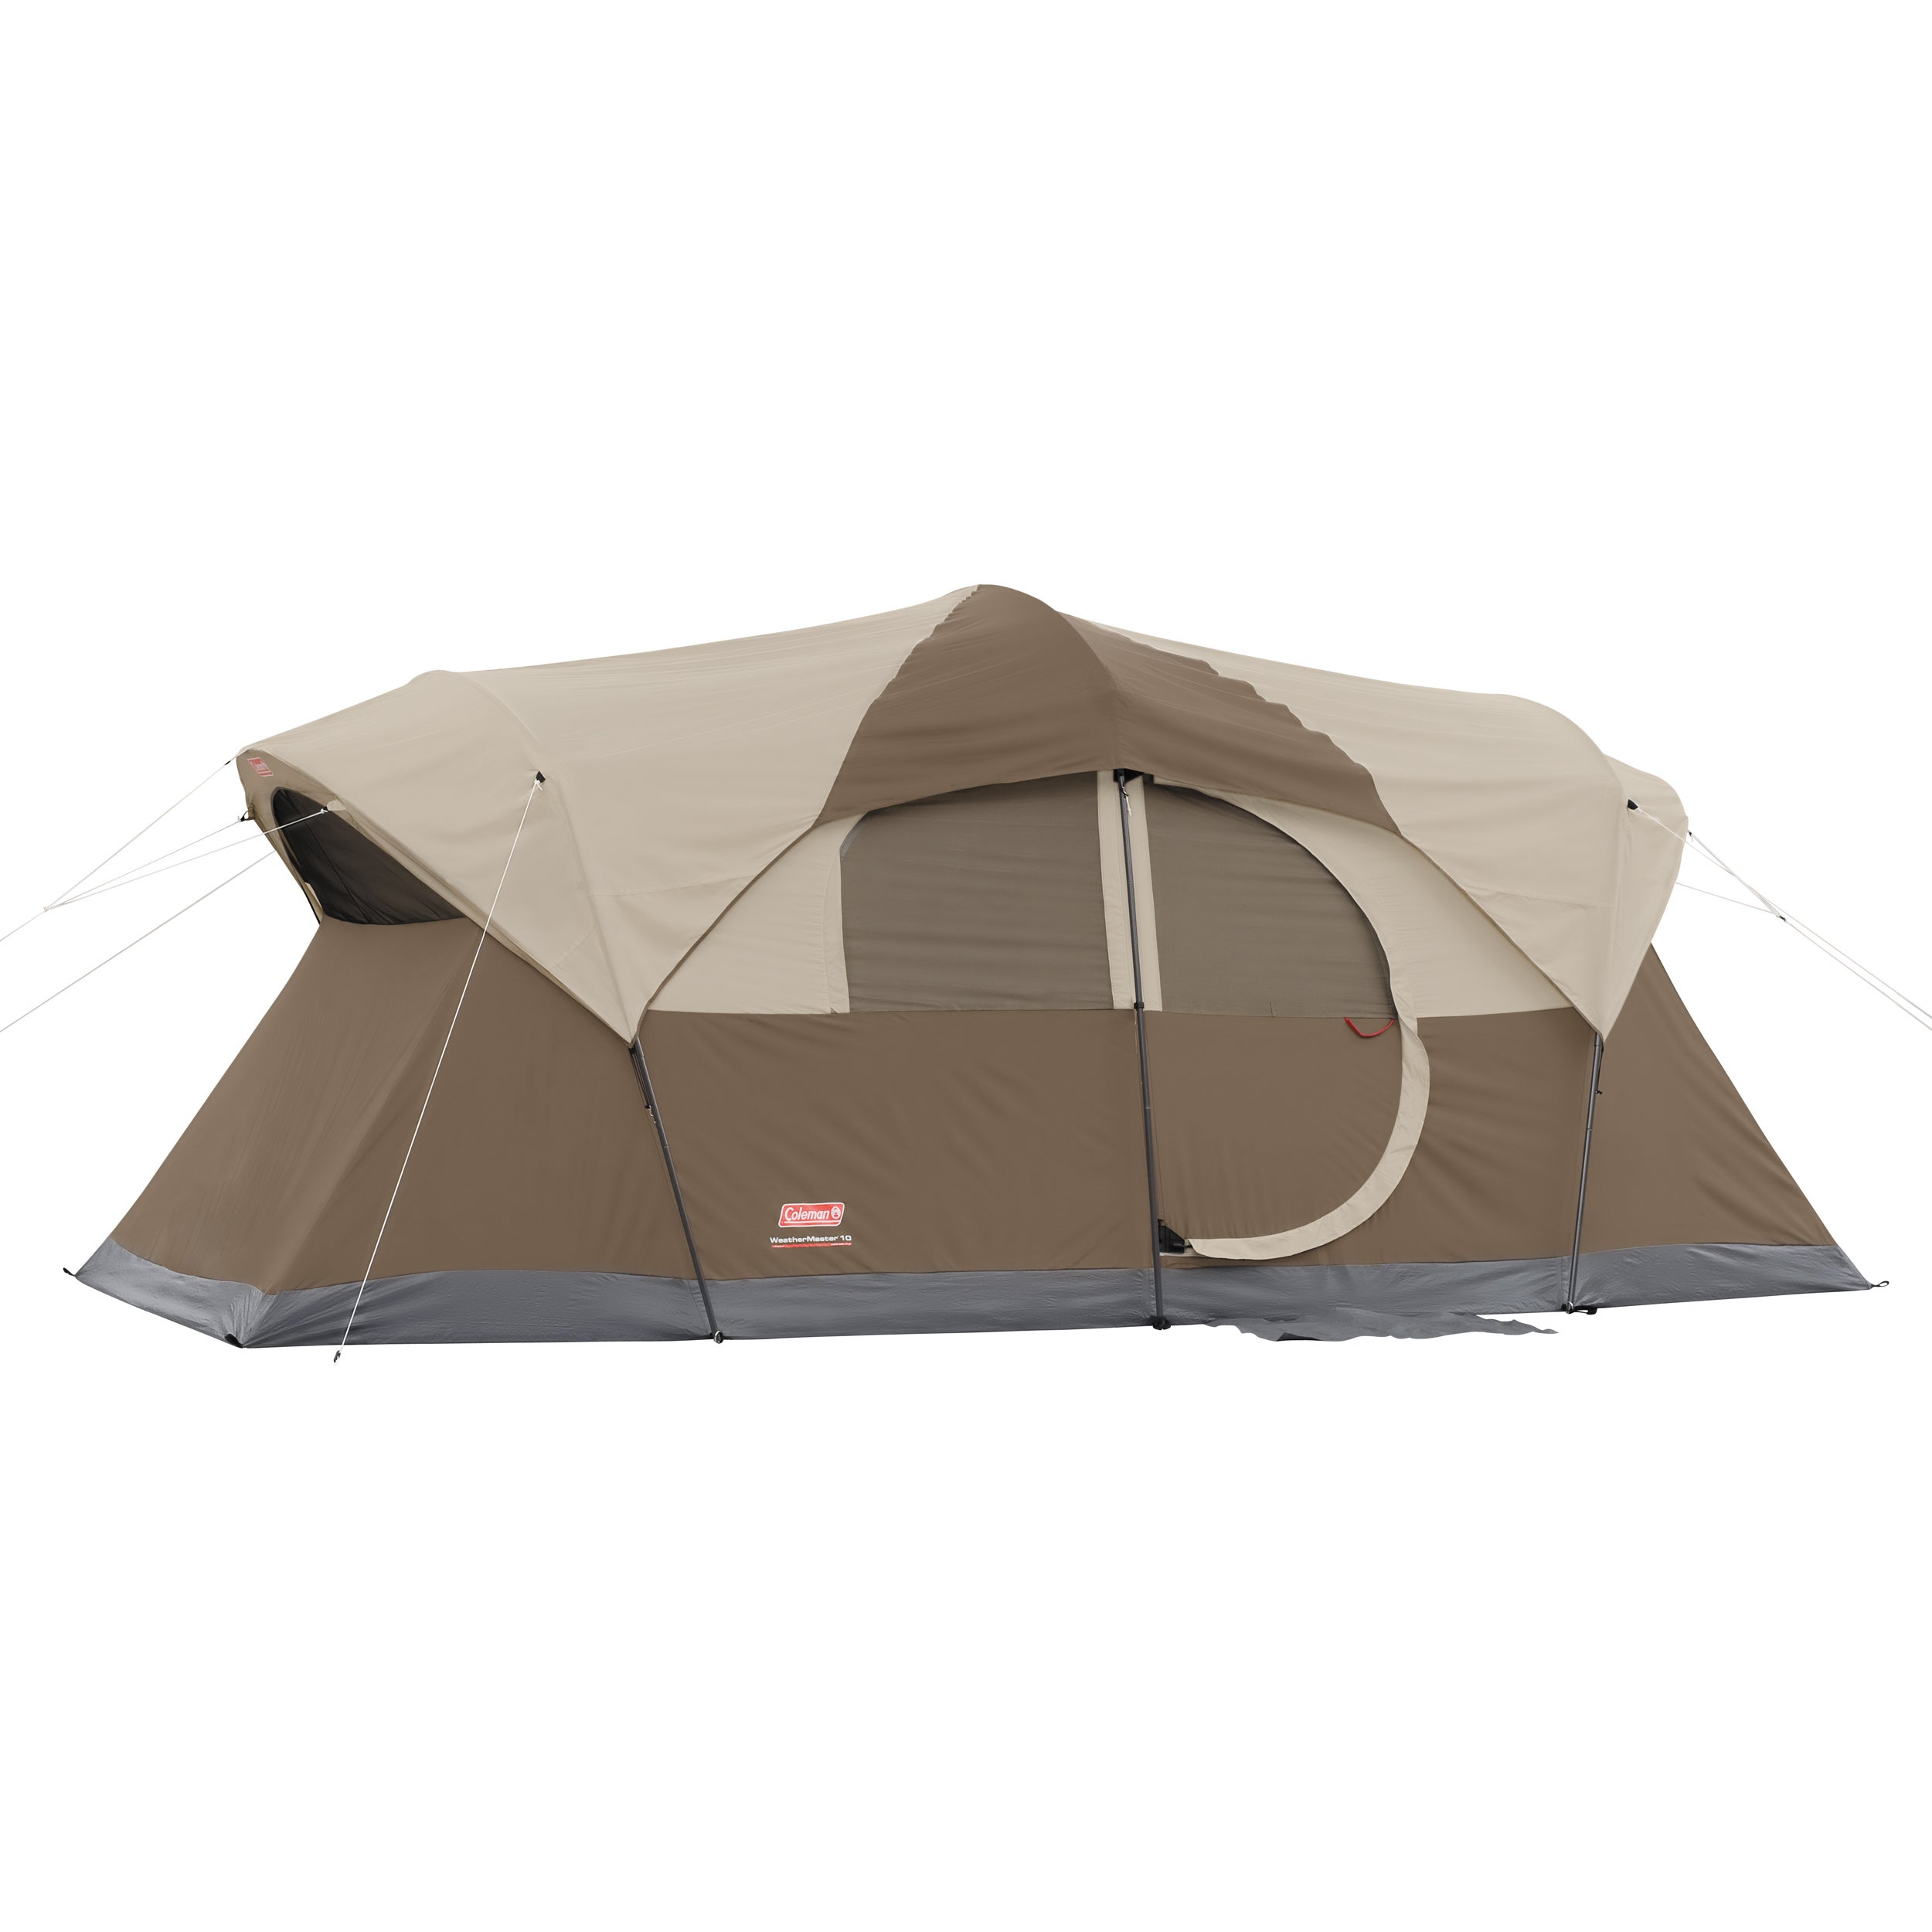 Coleman Weathermaster 10 Person Hinged Door Tent - Free Shipping Today - Overstock.com - 13559020  sc 1 st  Overstock.com & Coleman Weathermaster 10 Person Hinged Door Tent - Free Shipping ...